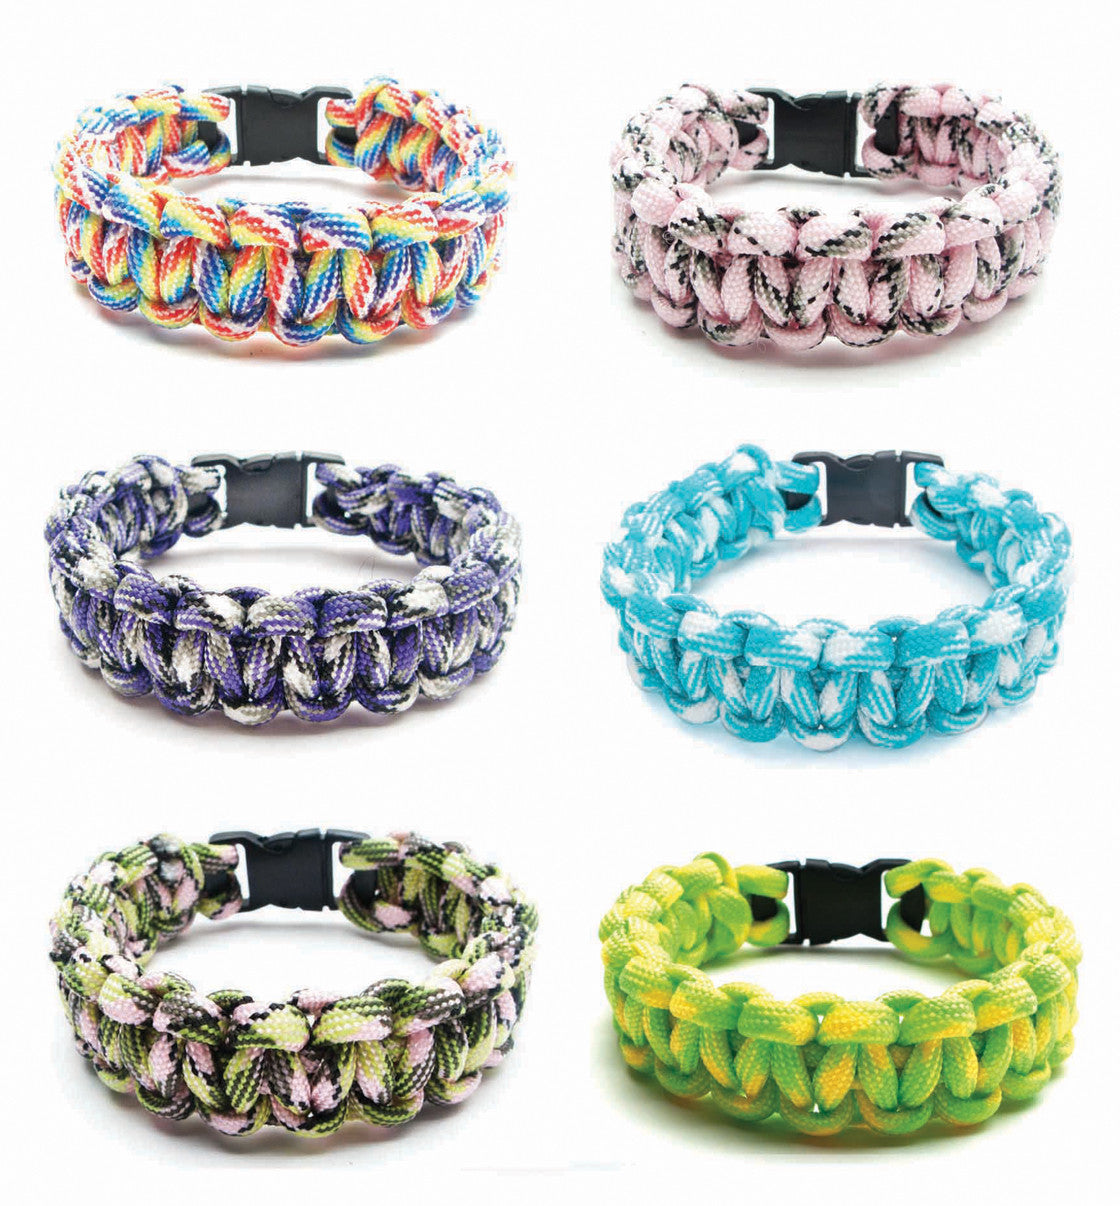 BLC1134B Multi-Color Paracord Braid Bracelet - 12 Pcs Unit